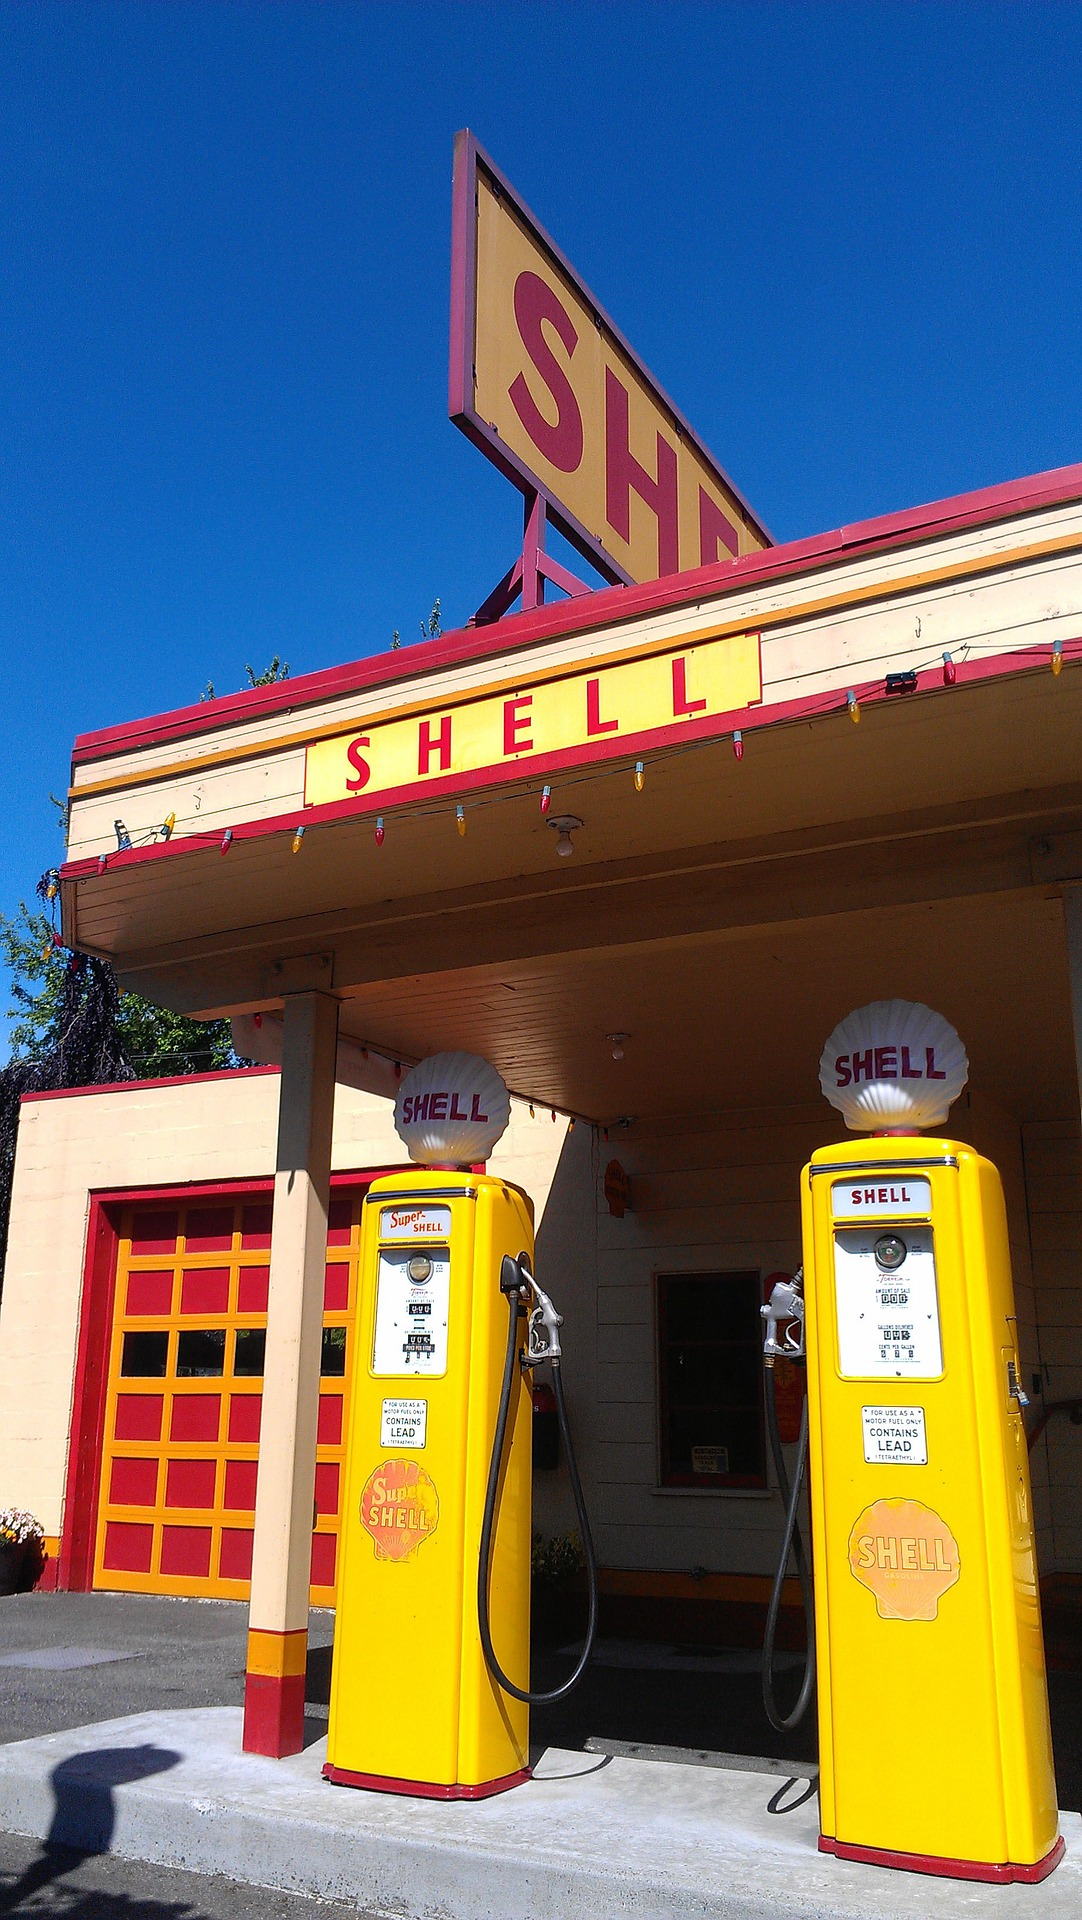 Old Shell gas stations and technology